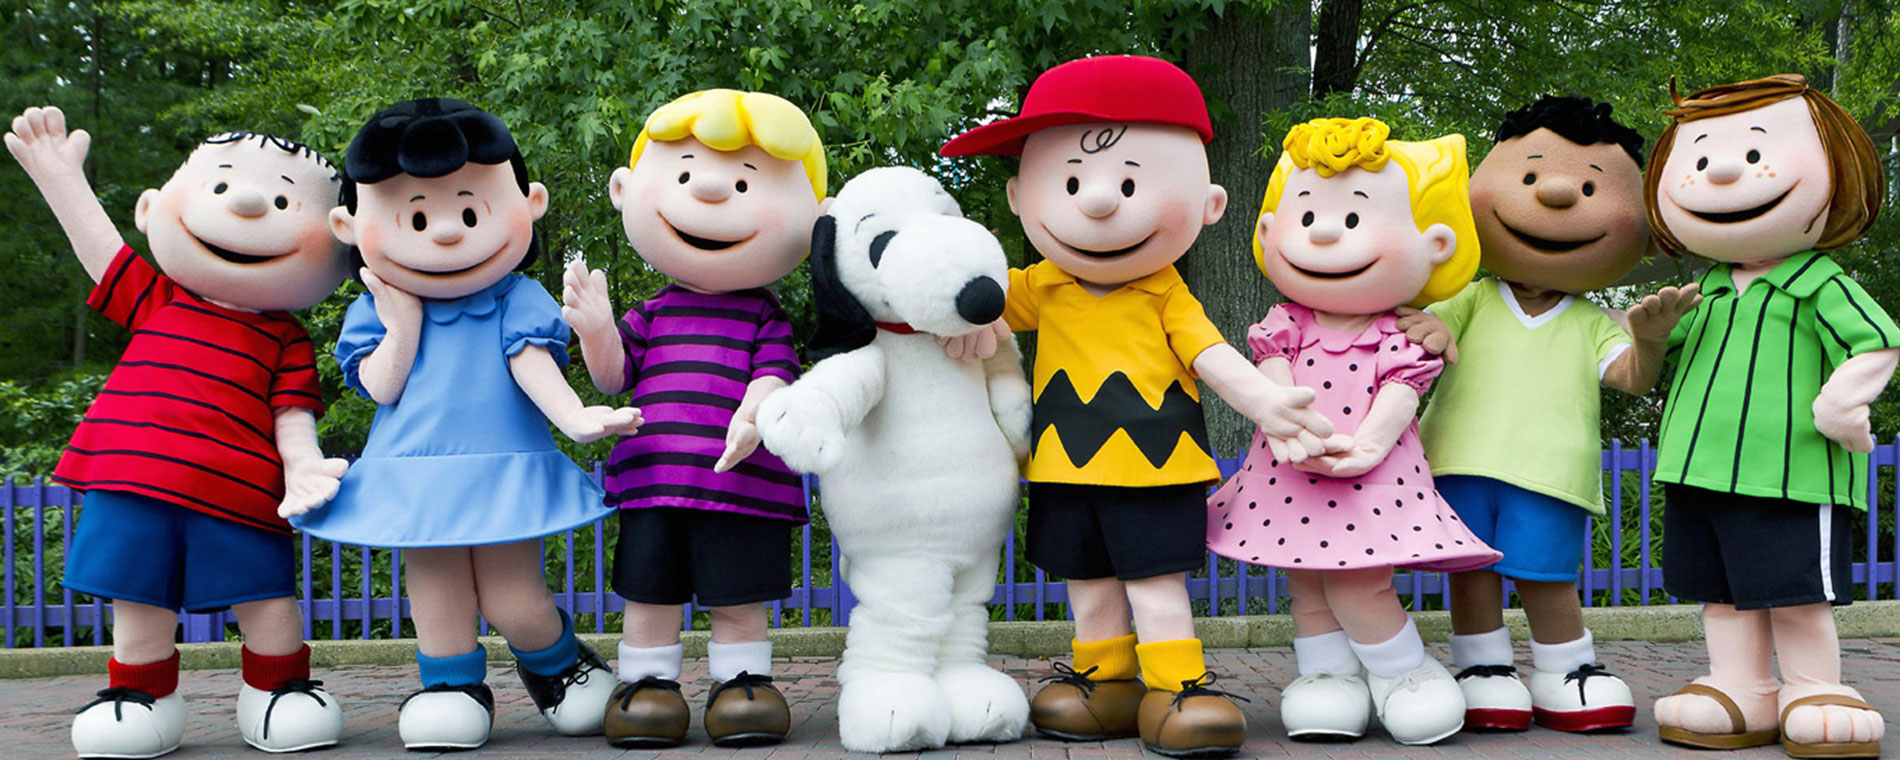 Peanuts Celebration at Kings Island